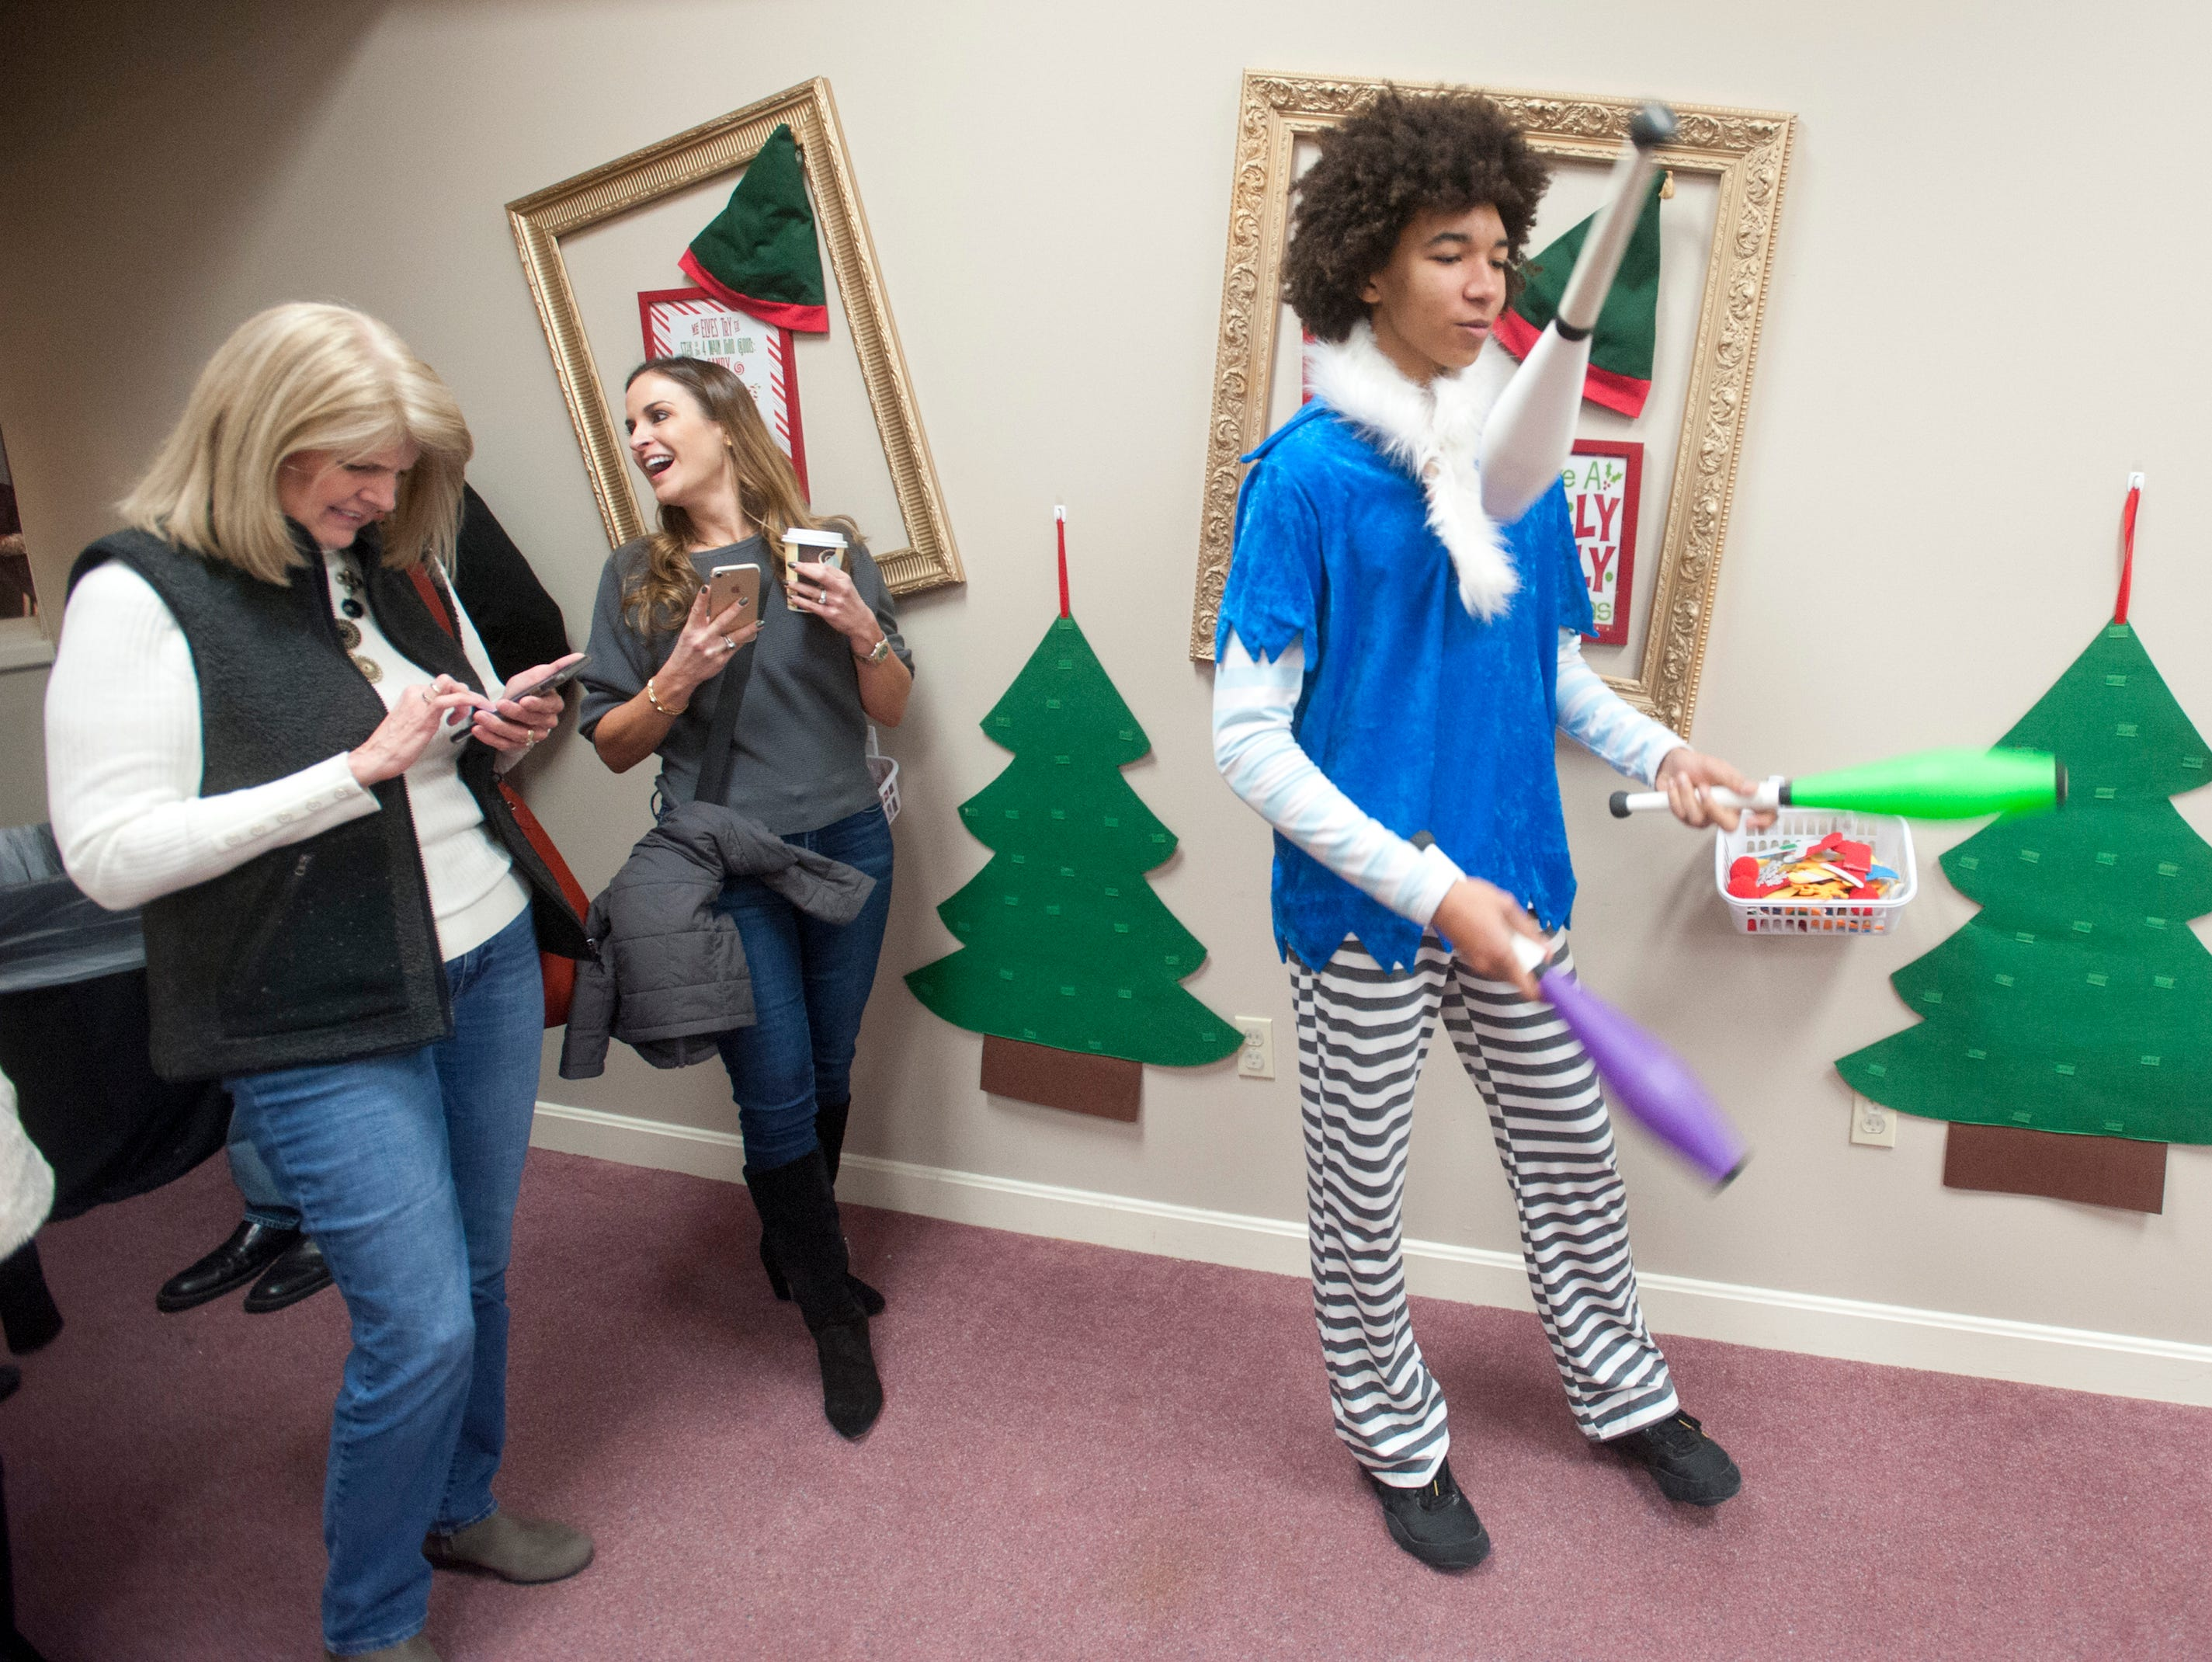 """Donna Hundley of Jeffersontown and Tonya Moore of Louisville's east end text to friends a juggler Michael Crinot of the highlands entertains them at the Galt House Hotel's sold-out event,  """"Breakfast with Santa.""""22 December 2018"""